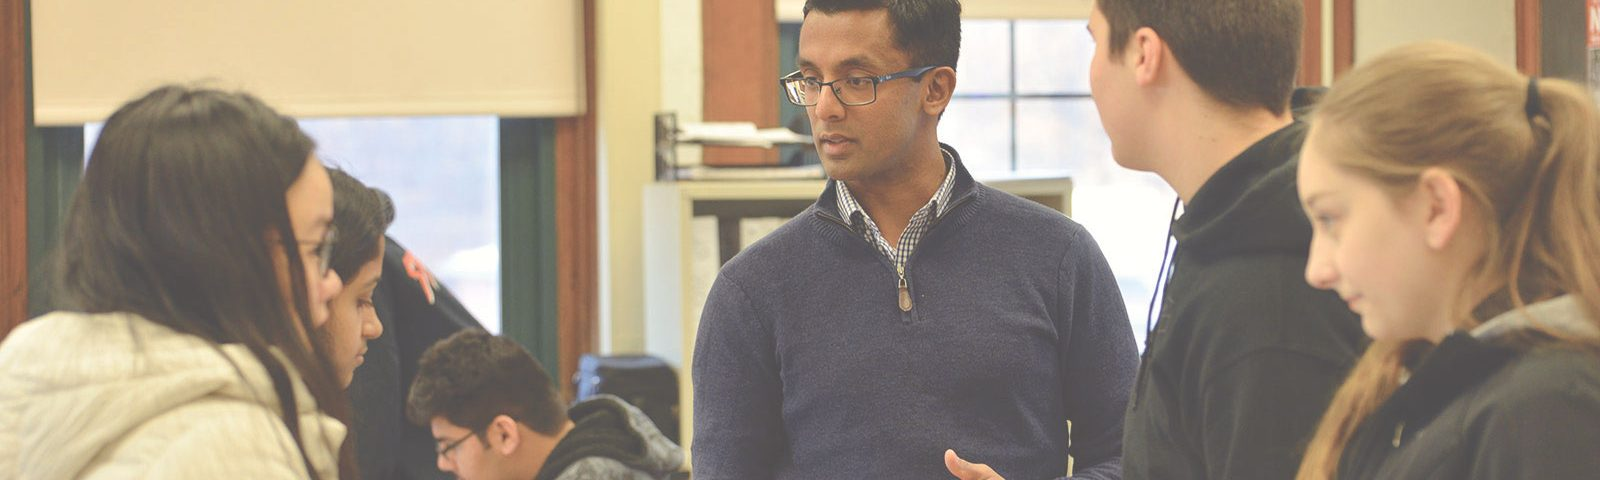 Sushruta Kunnenkeri '18 MA leads a science lesson at Norwich Free Academy this past fall.